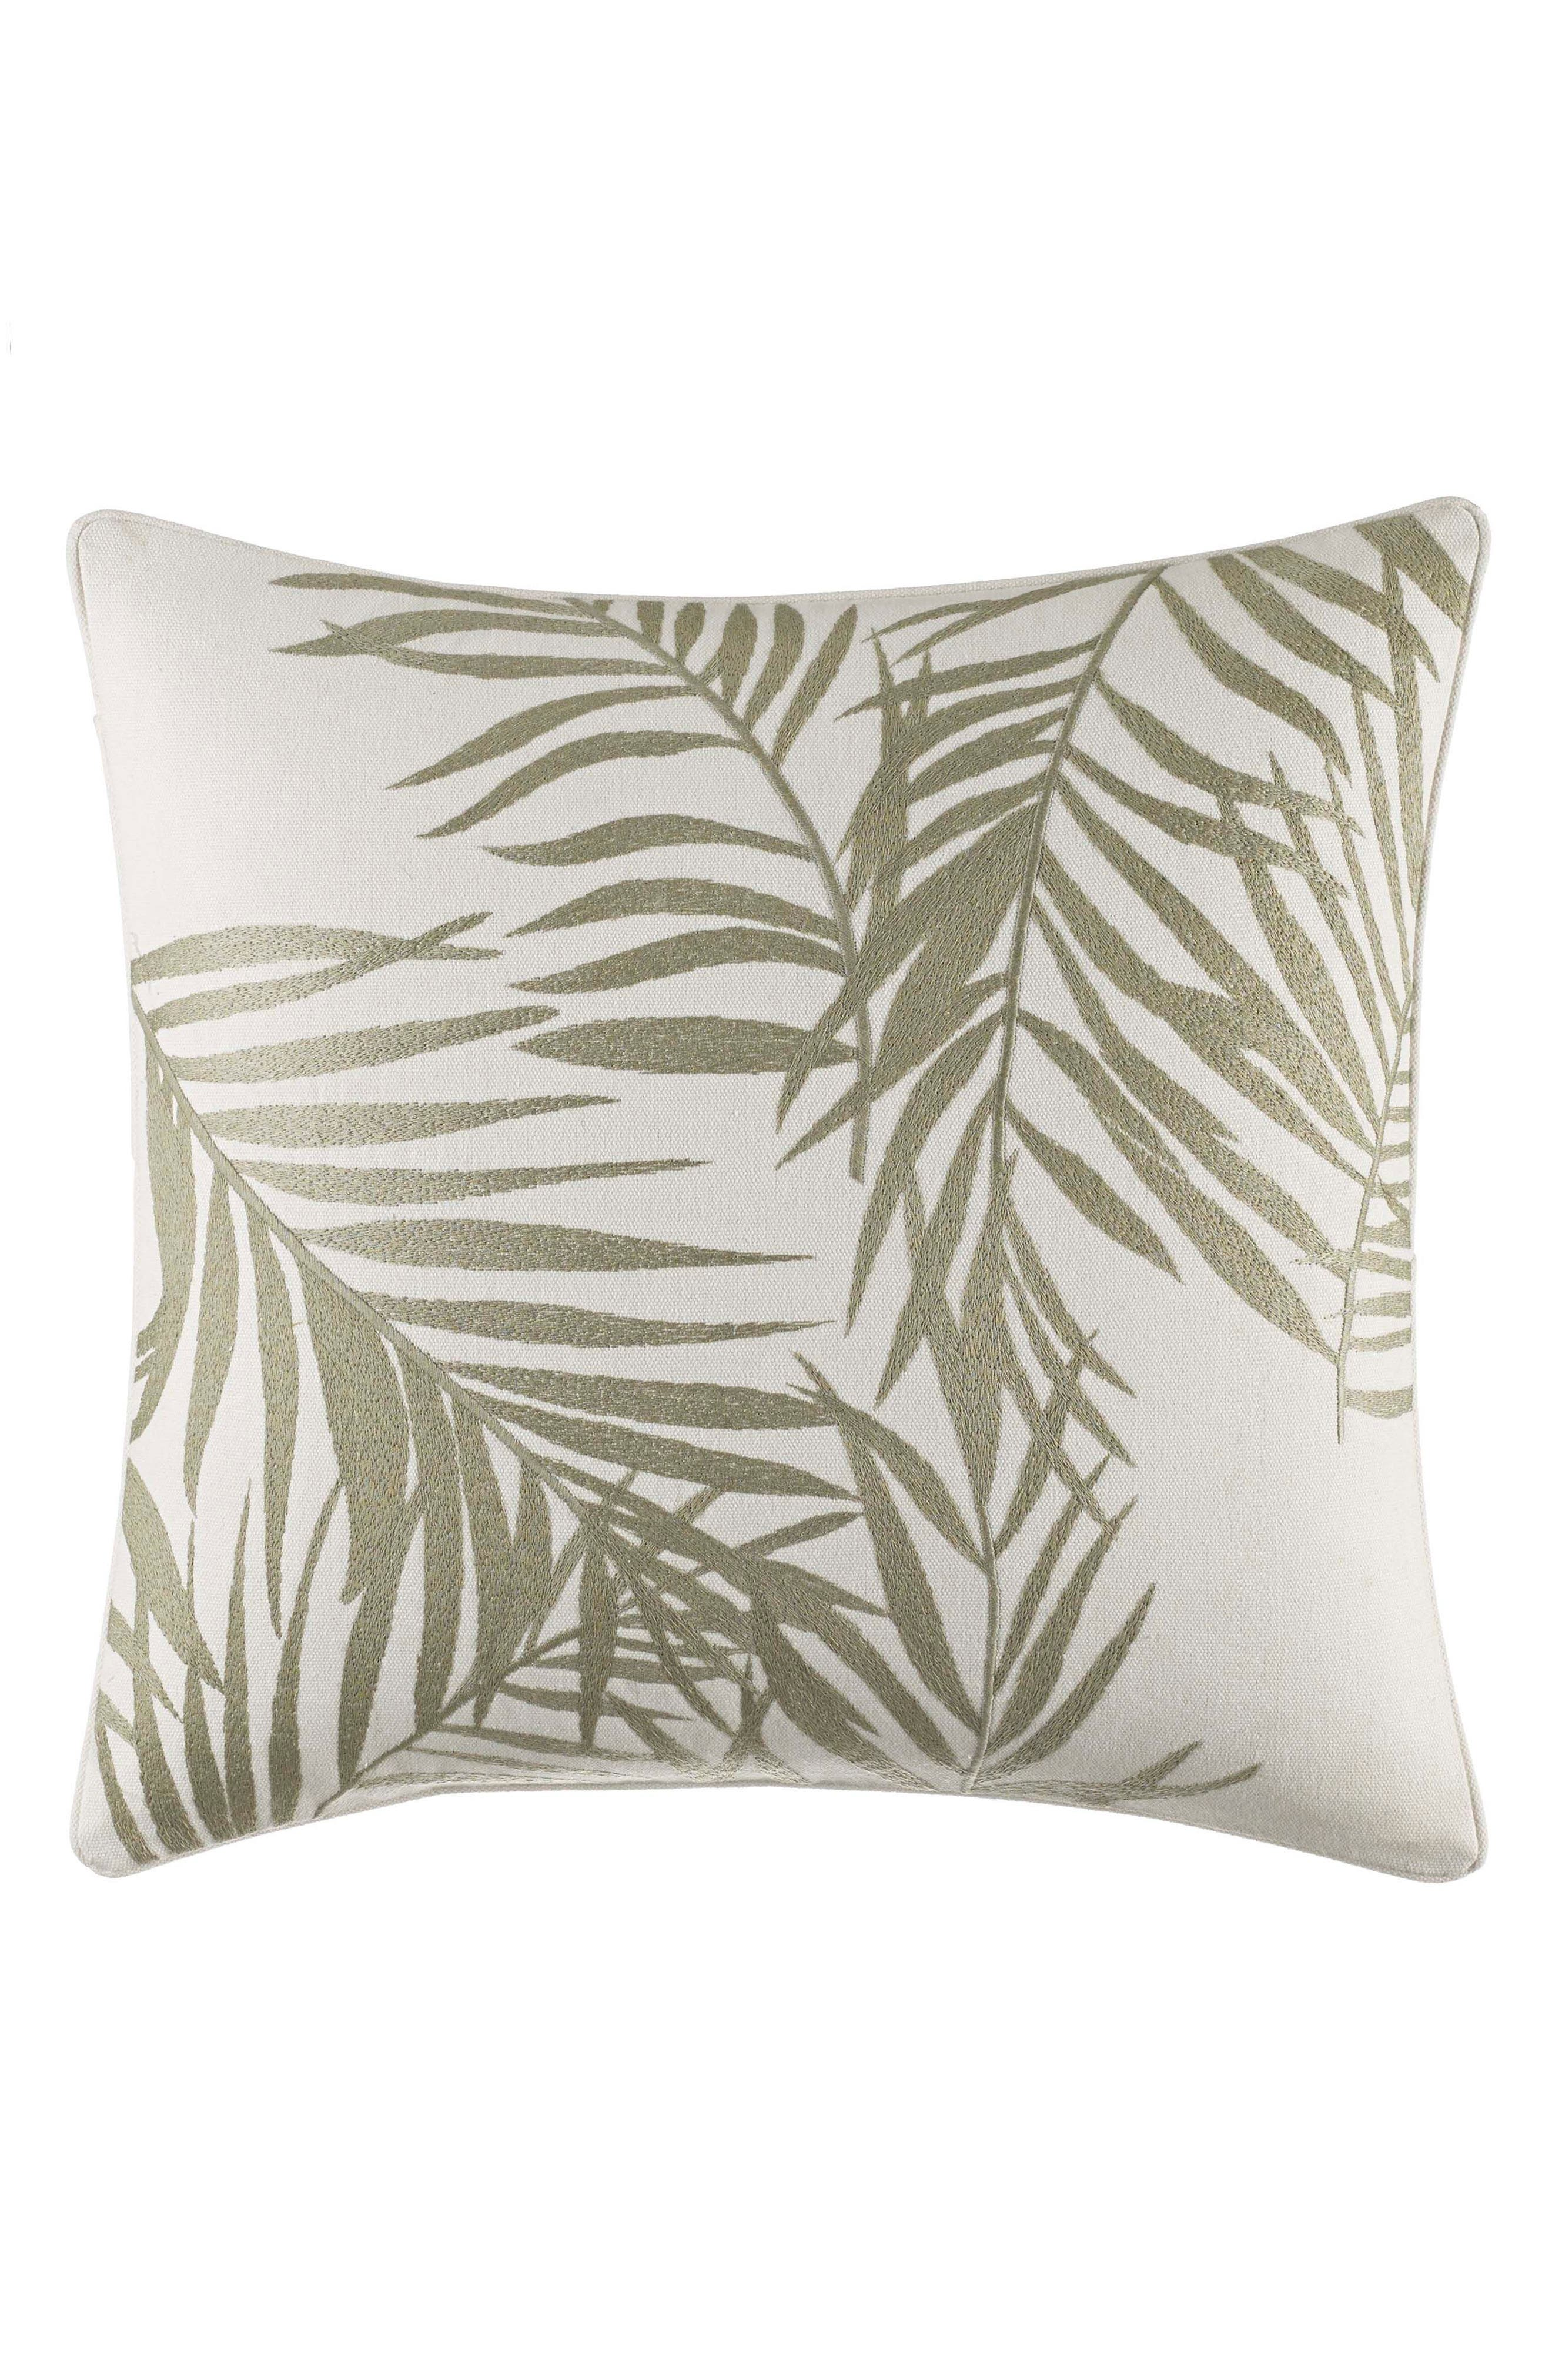 Palms Away Embroidered Accent Pillow,                         Main,                         color, Light Beige